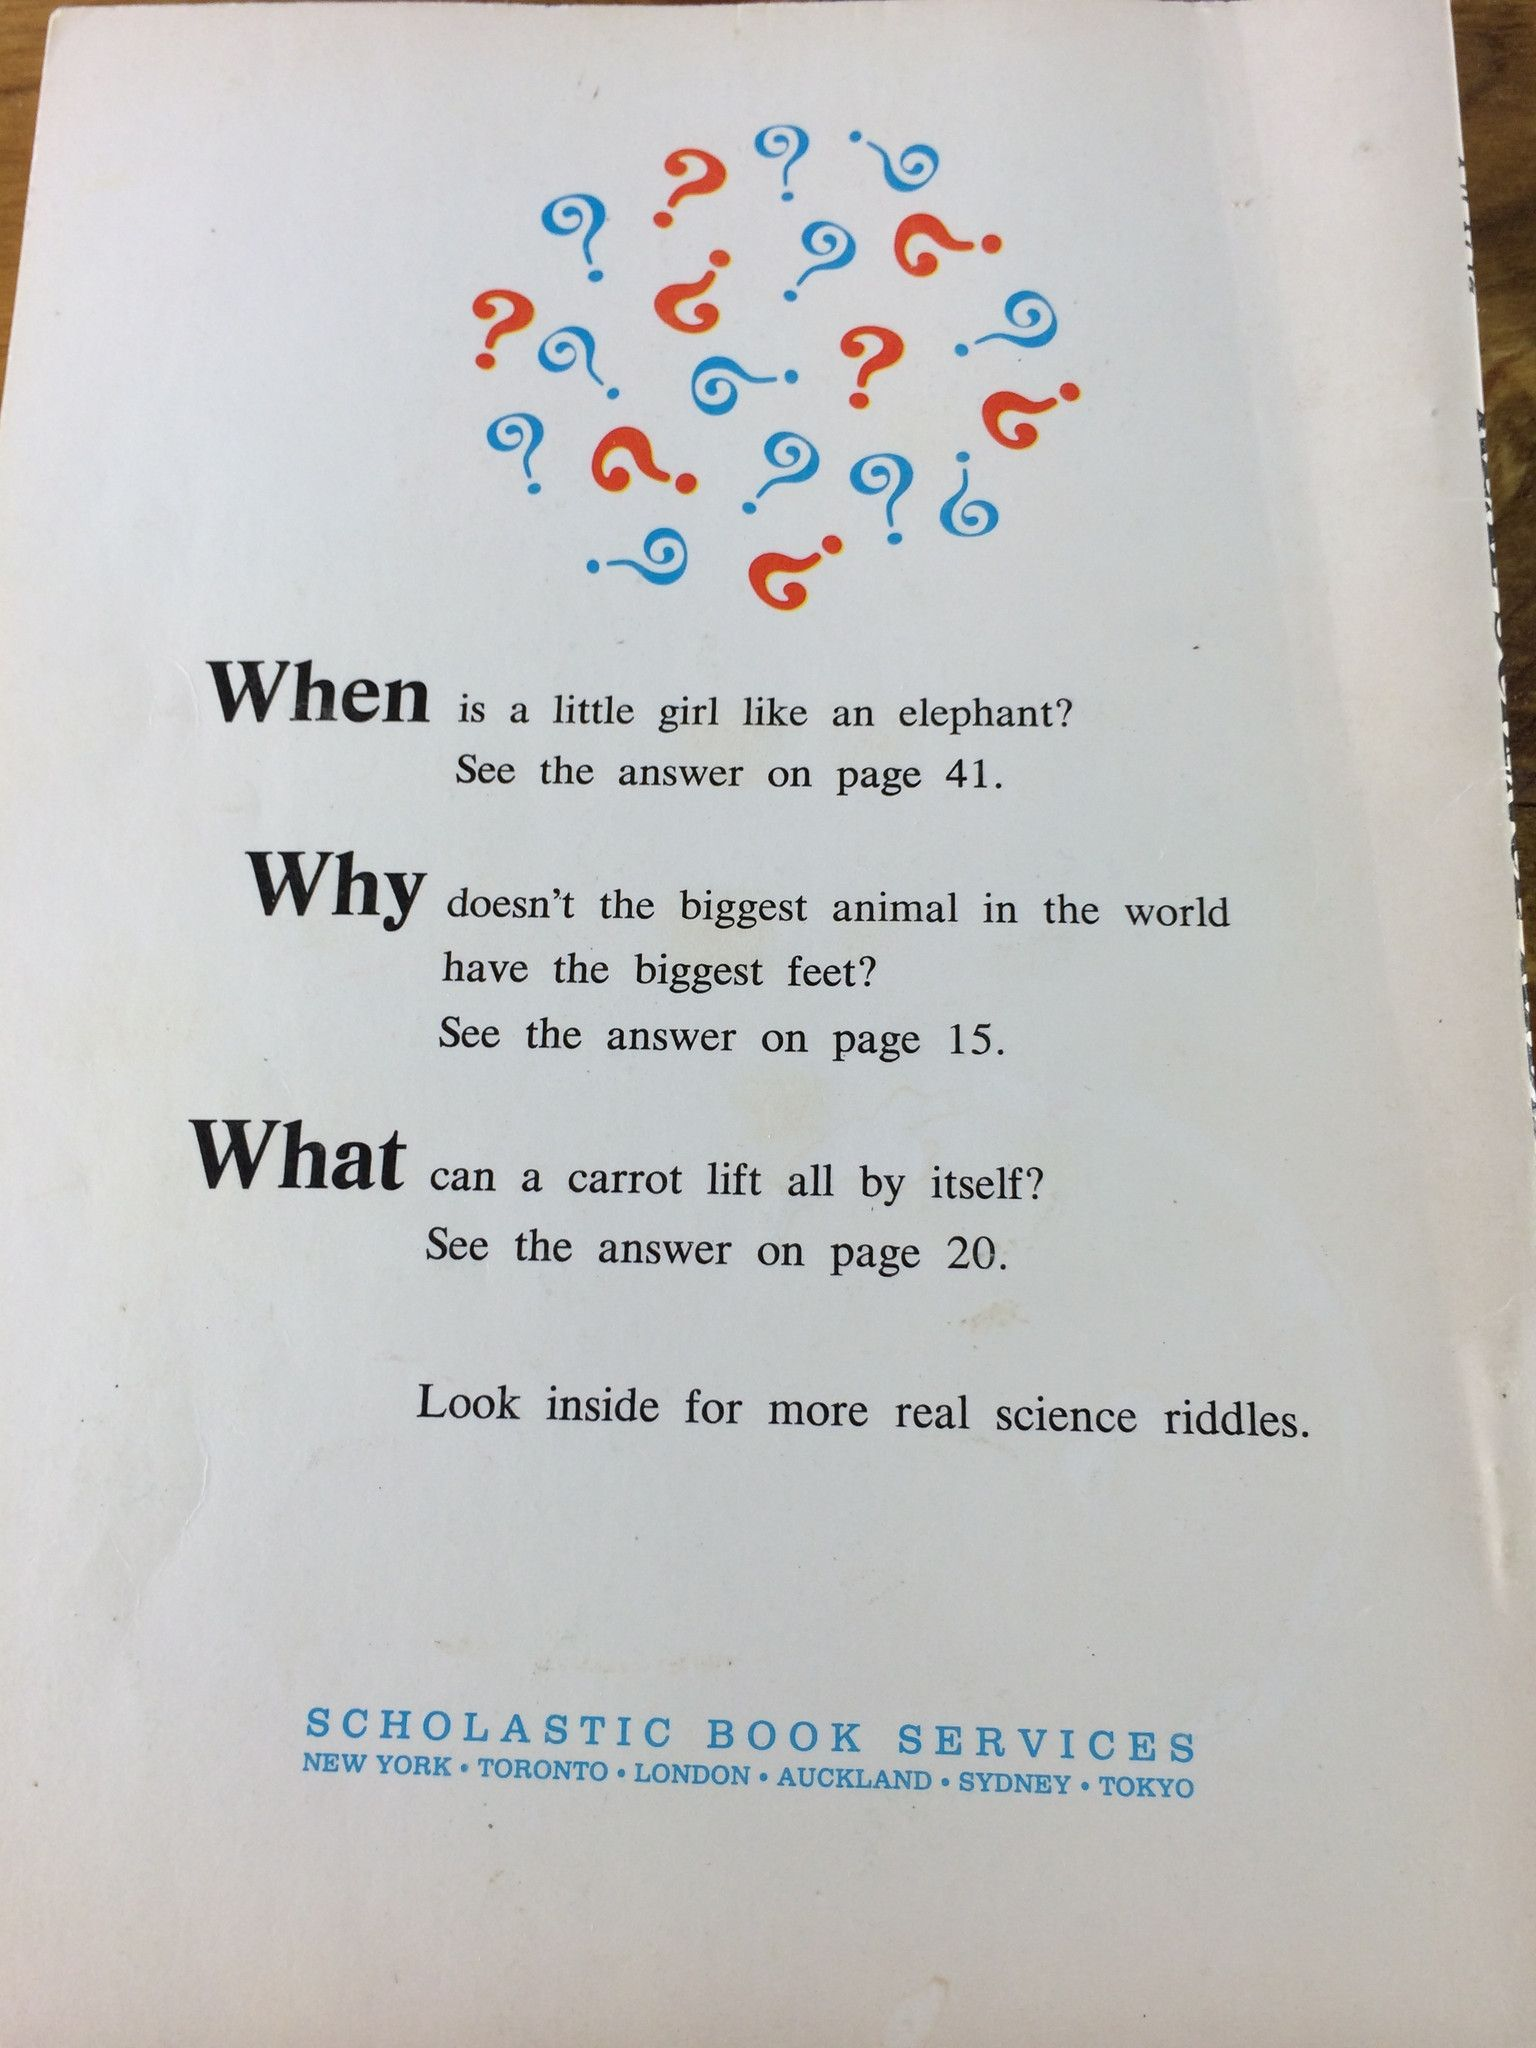 Real Science Riddles by Rose Wyler. Copyright, 1971